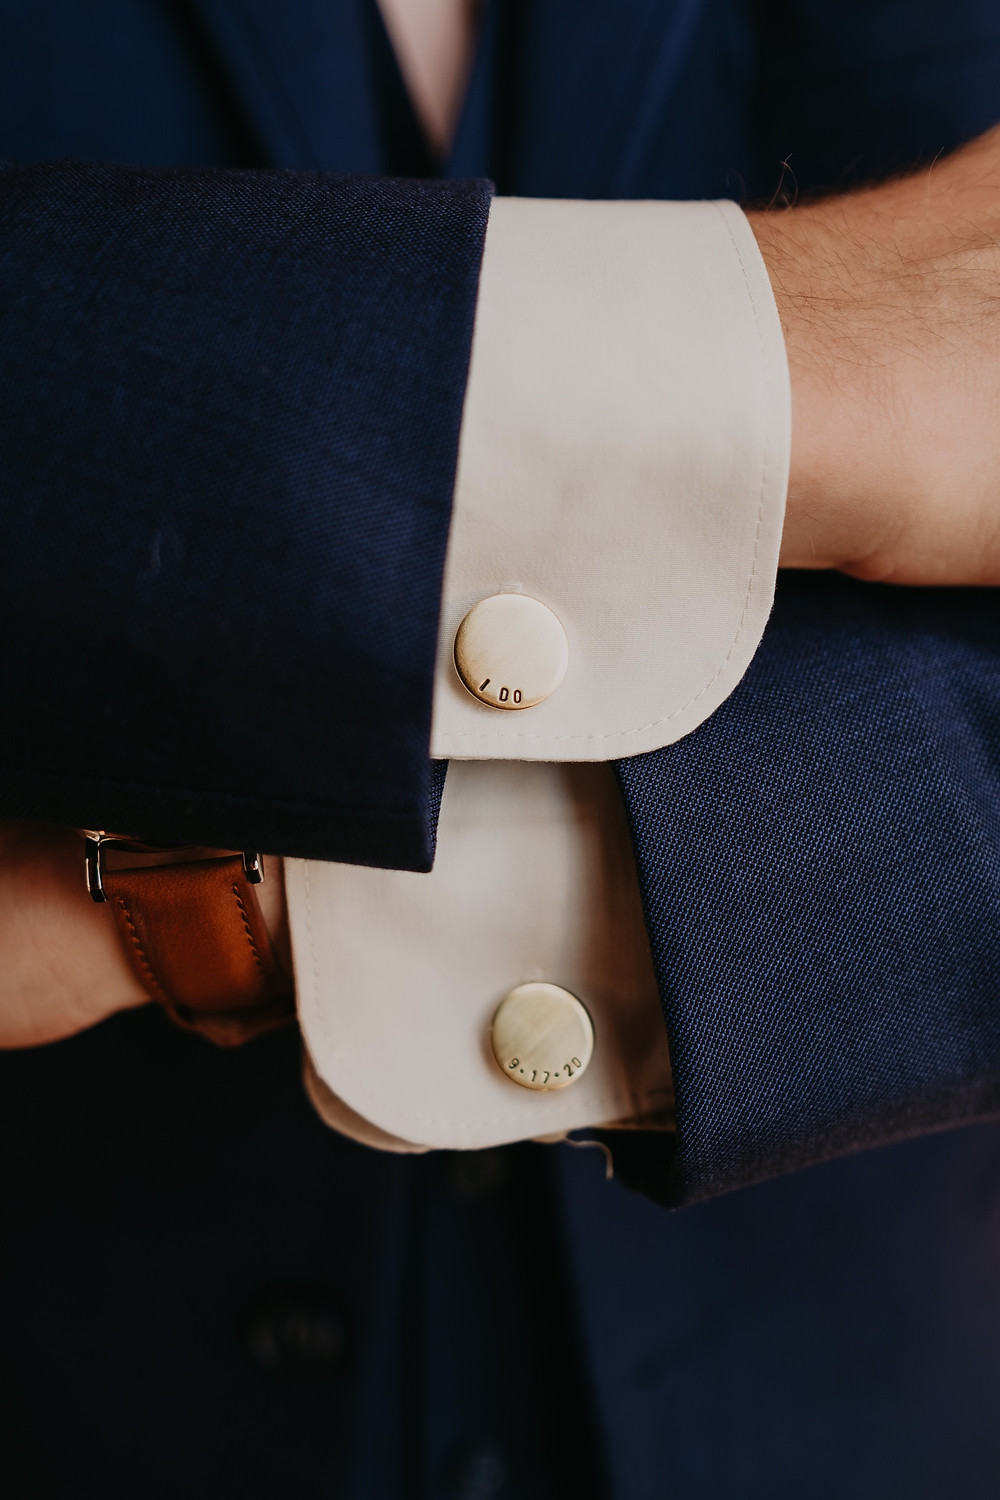 Customized cuff links for groom. Photographed by Nicole Leanne Photography.